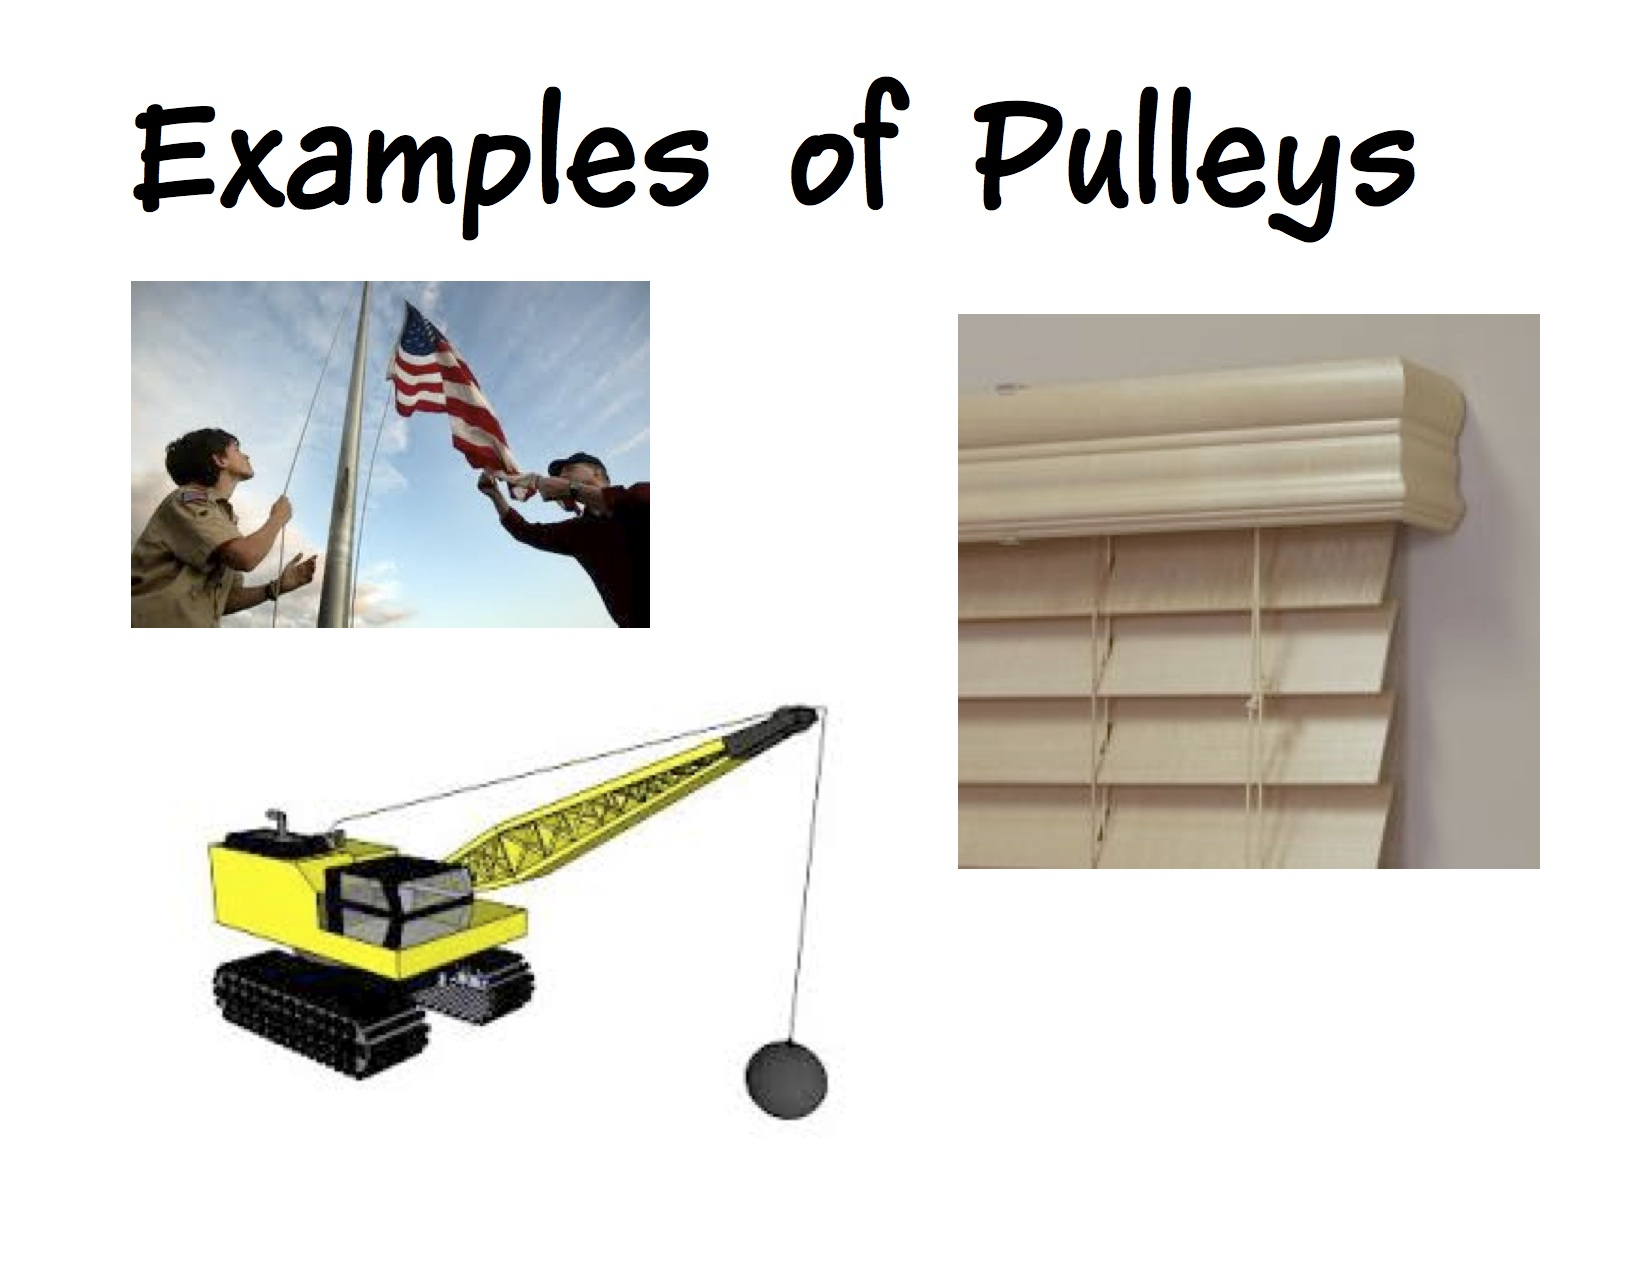 Inclined Plane Examples In Everyday Life wonderful examples of pulleys in the home intended inspiration